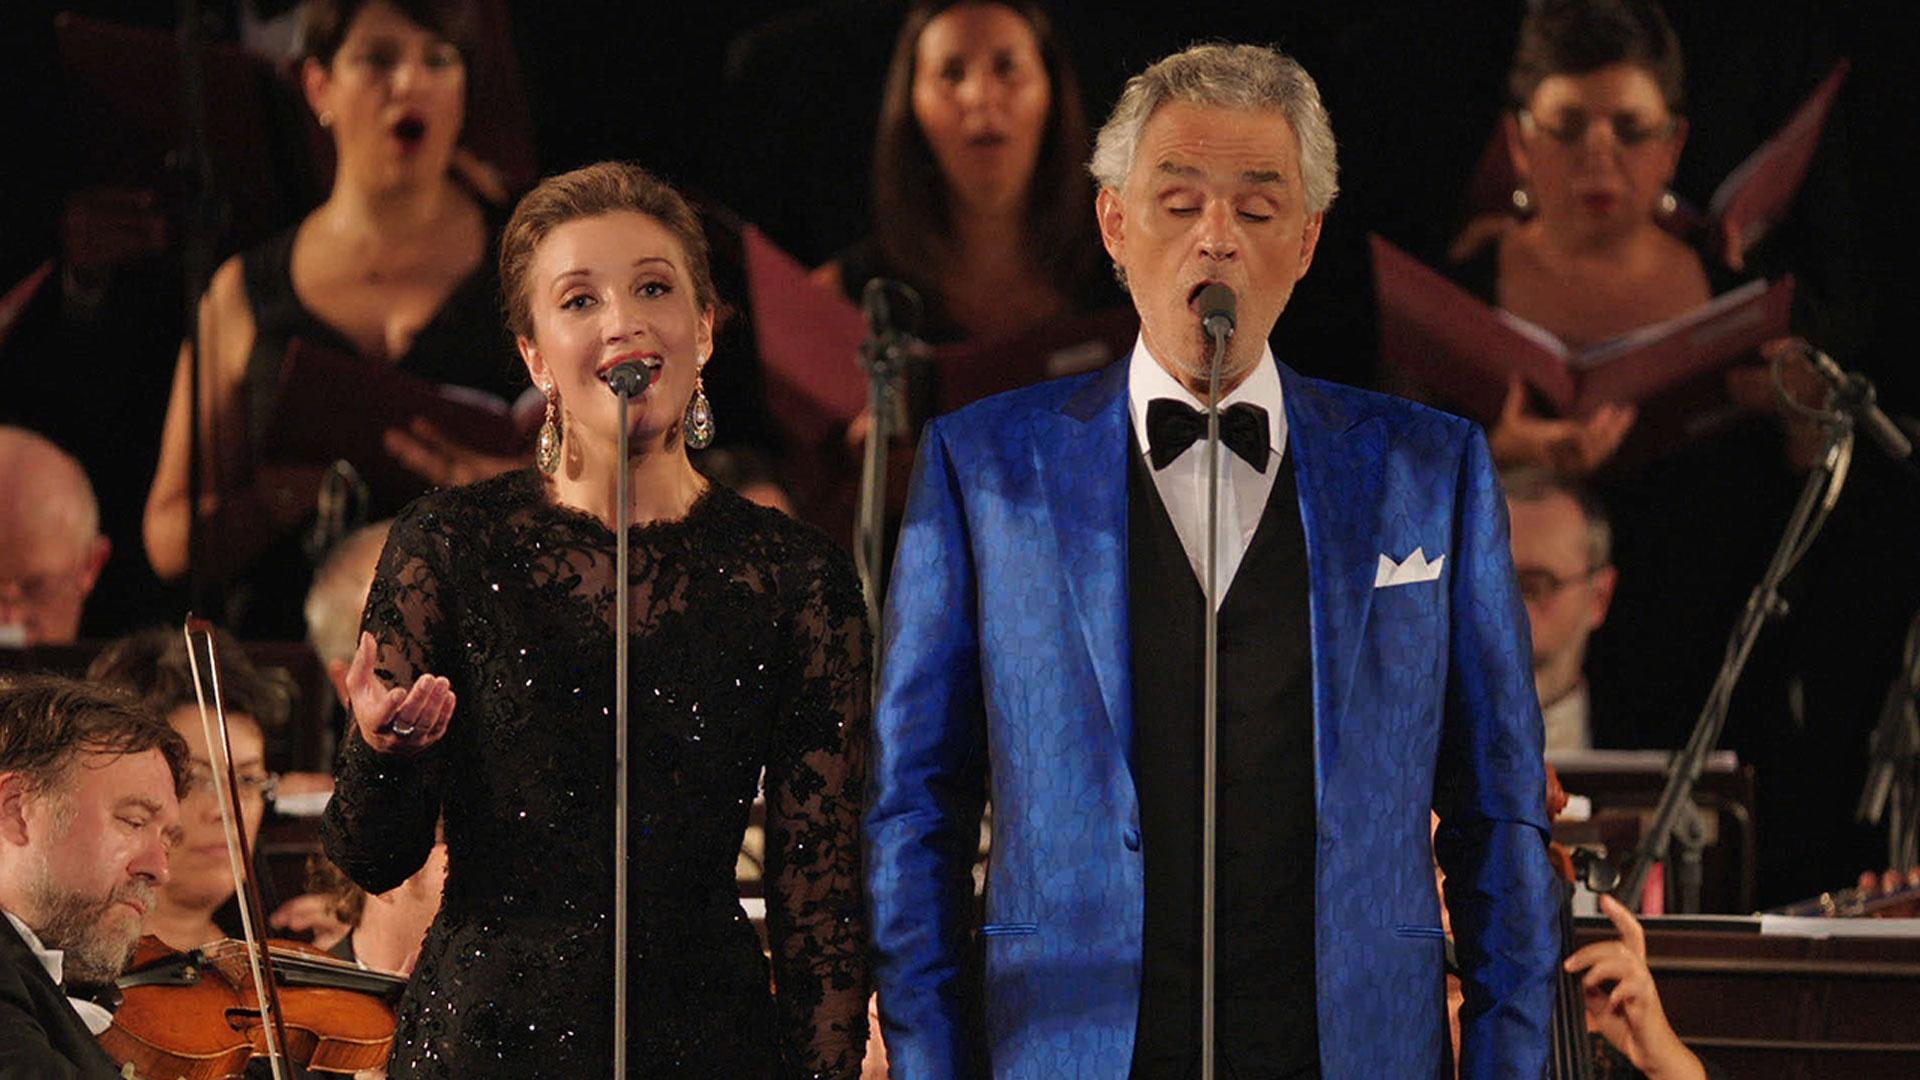 Andrea Bocelli – Landmarks Live in Concert – A Great Perform